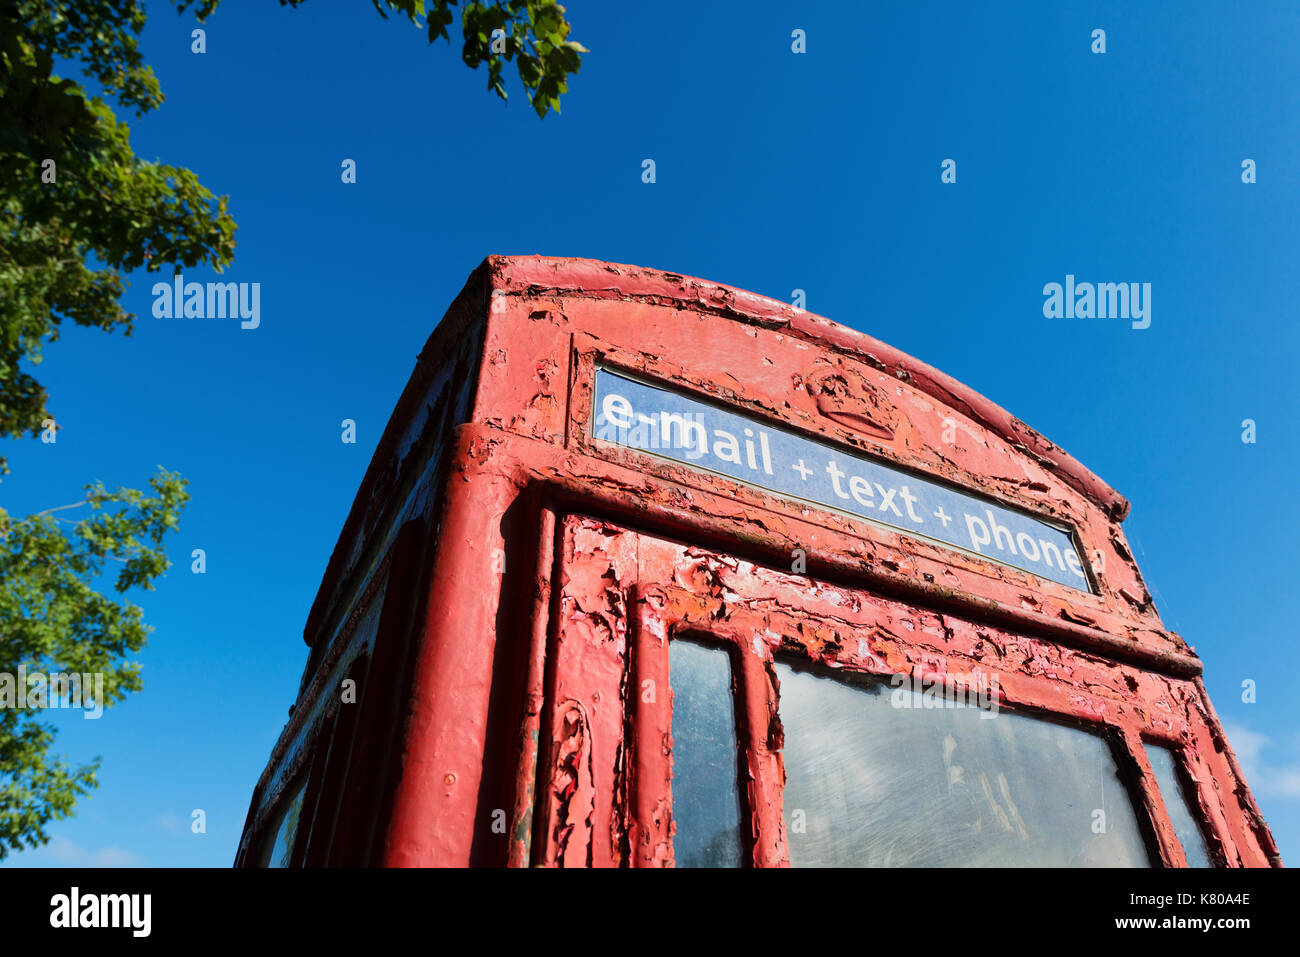 Rusty and Peeling Old Red Telephone Box against a Blue Sky - Stock Image